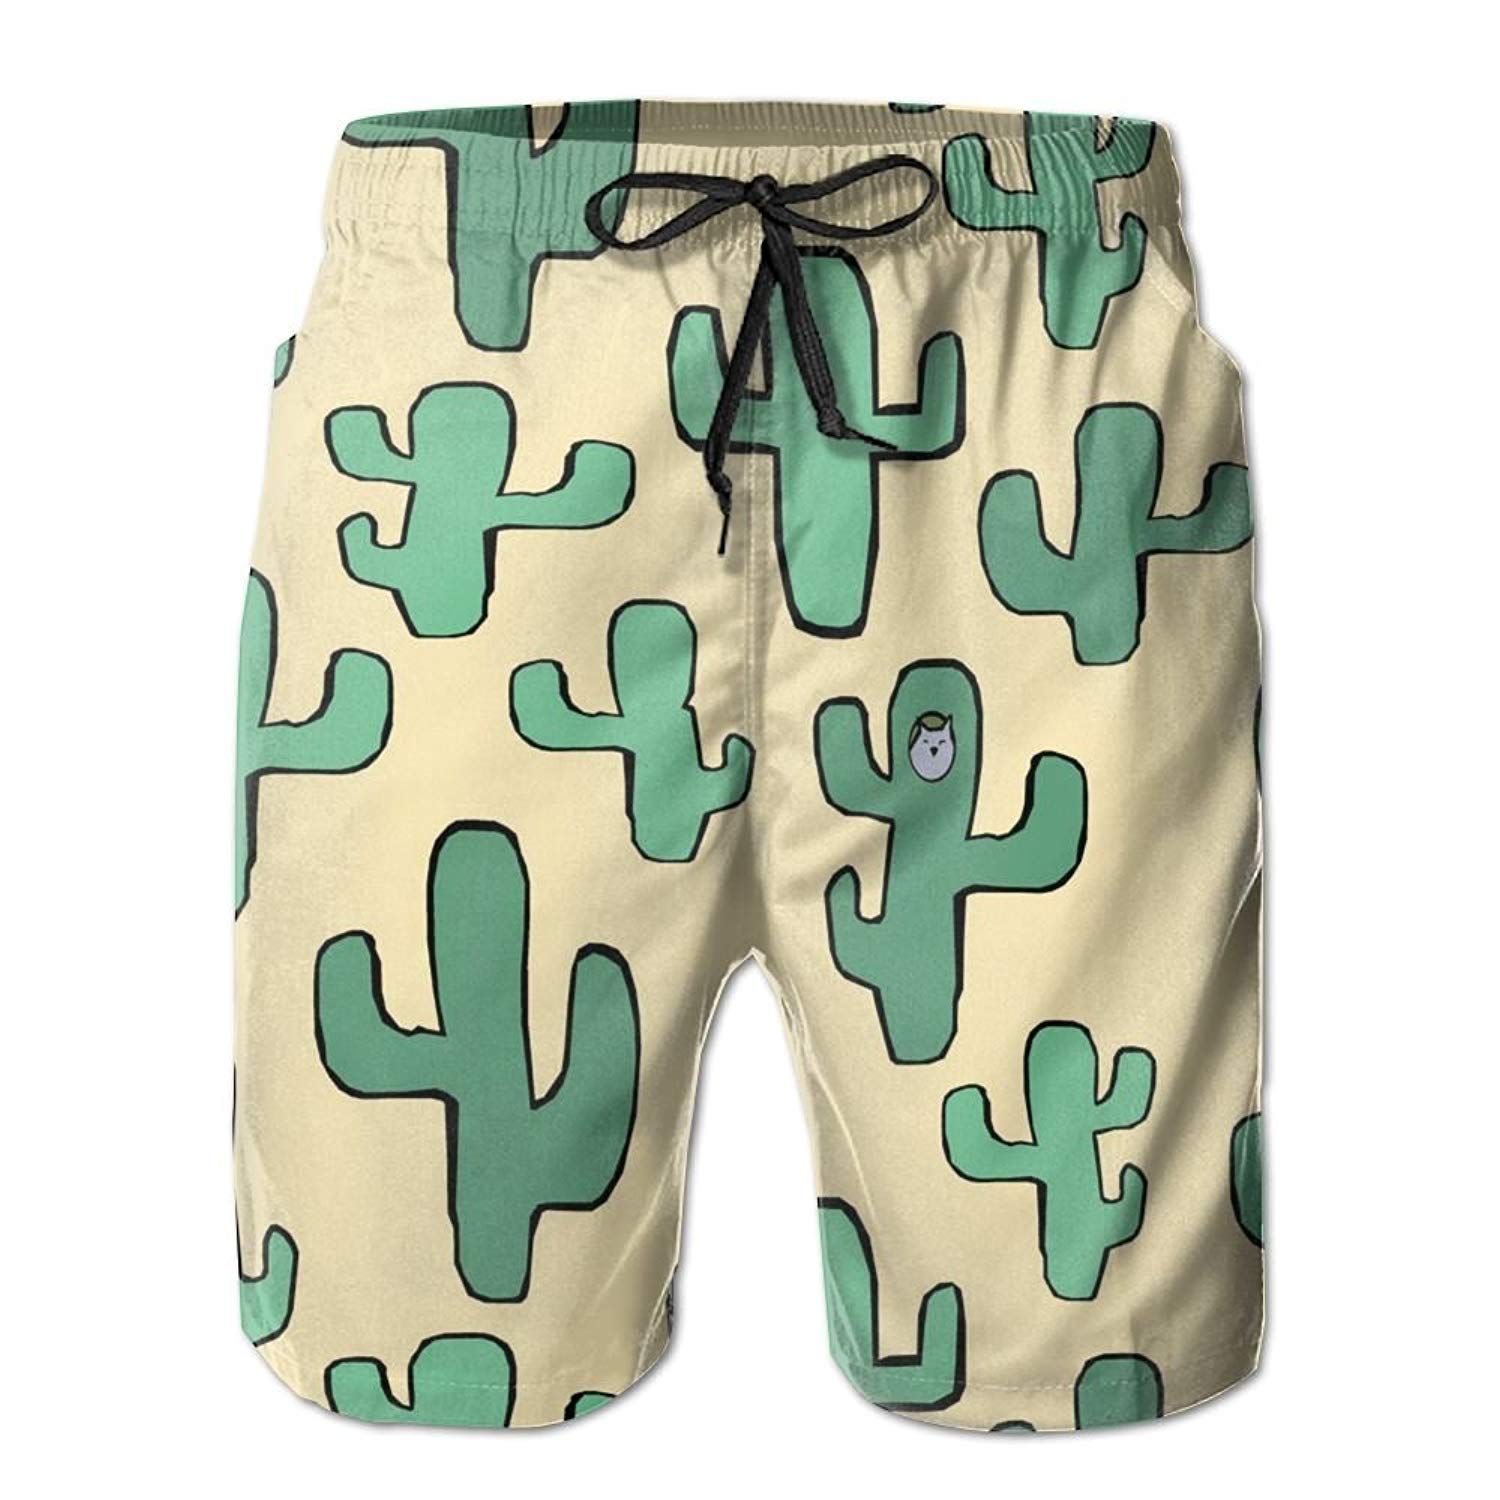 EYBFHUO Swim Trunk Relaxed Male Cartoon Animals Beach Shorts Swimwear.